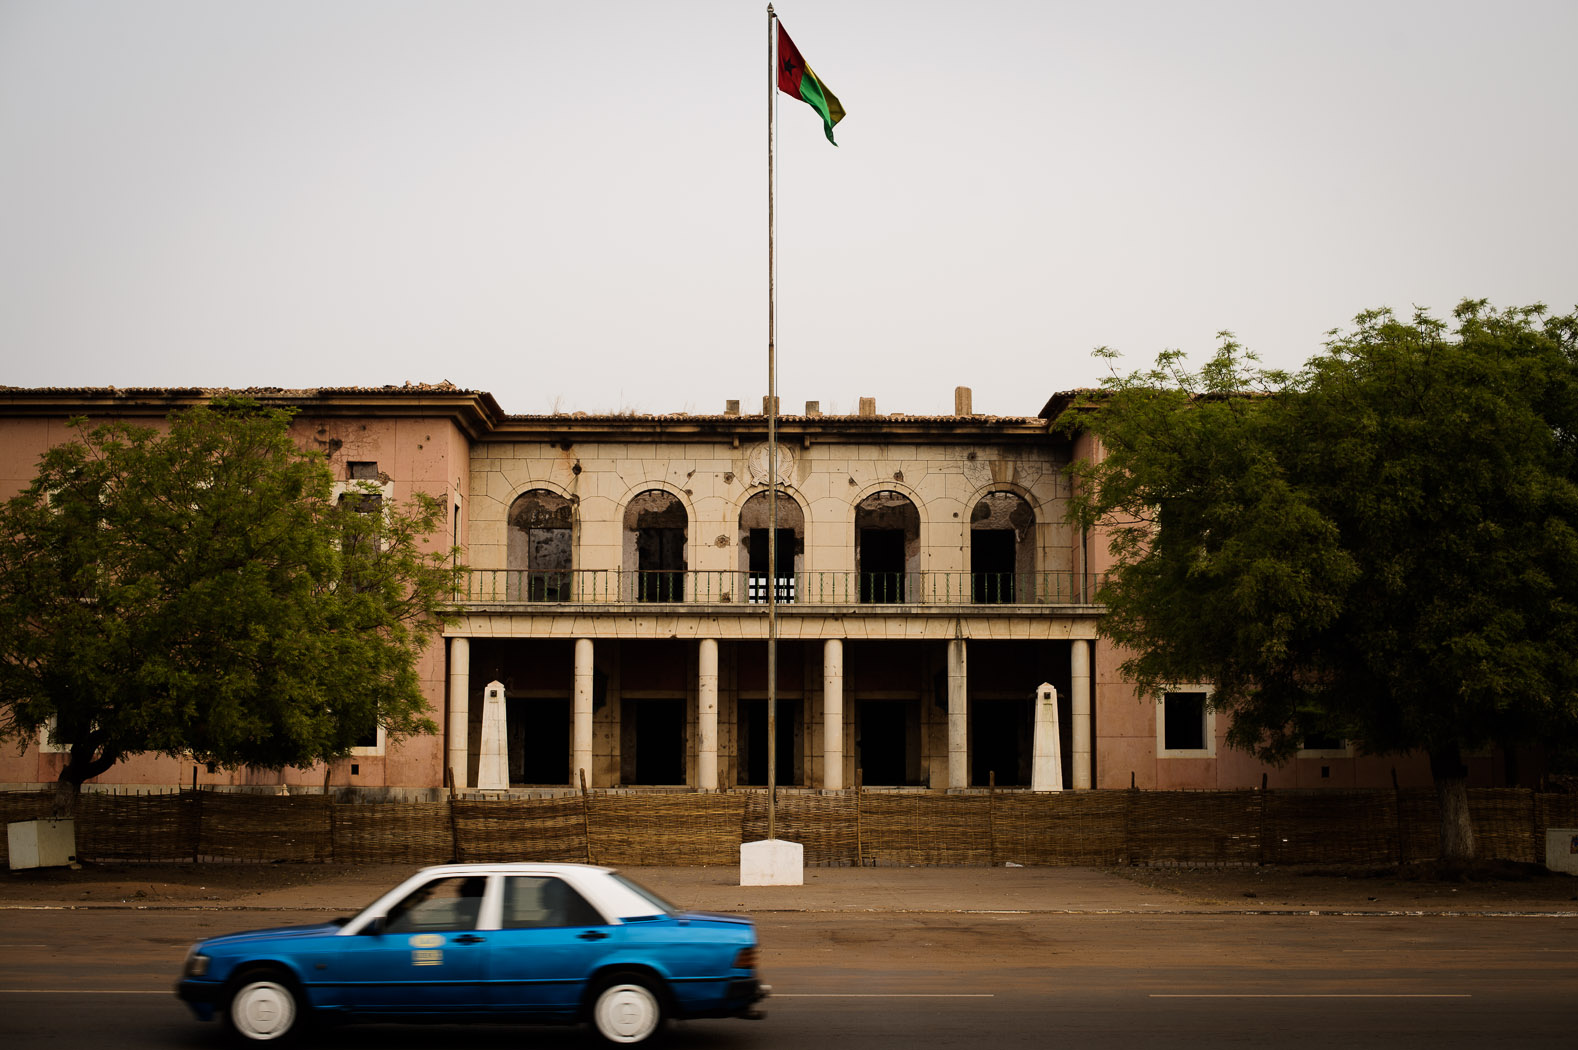 The presidential palace stands derelict after being shot at and set alight during the country's civil war in 1999.